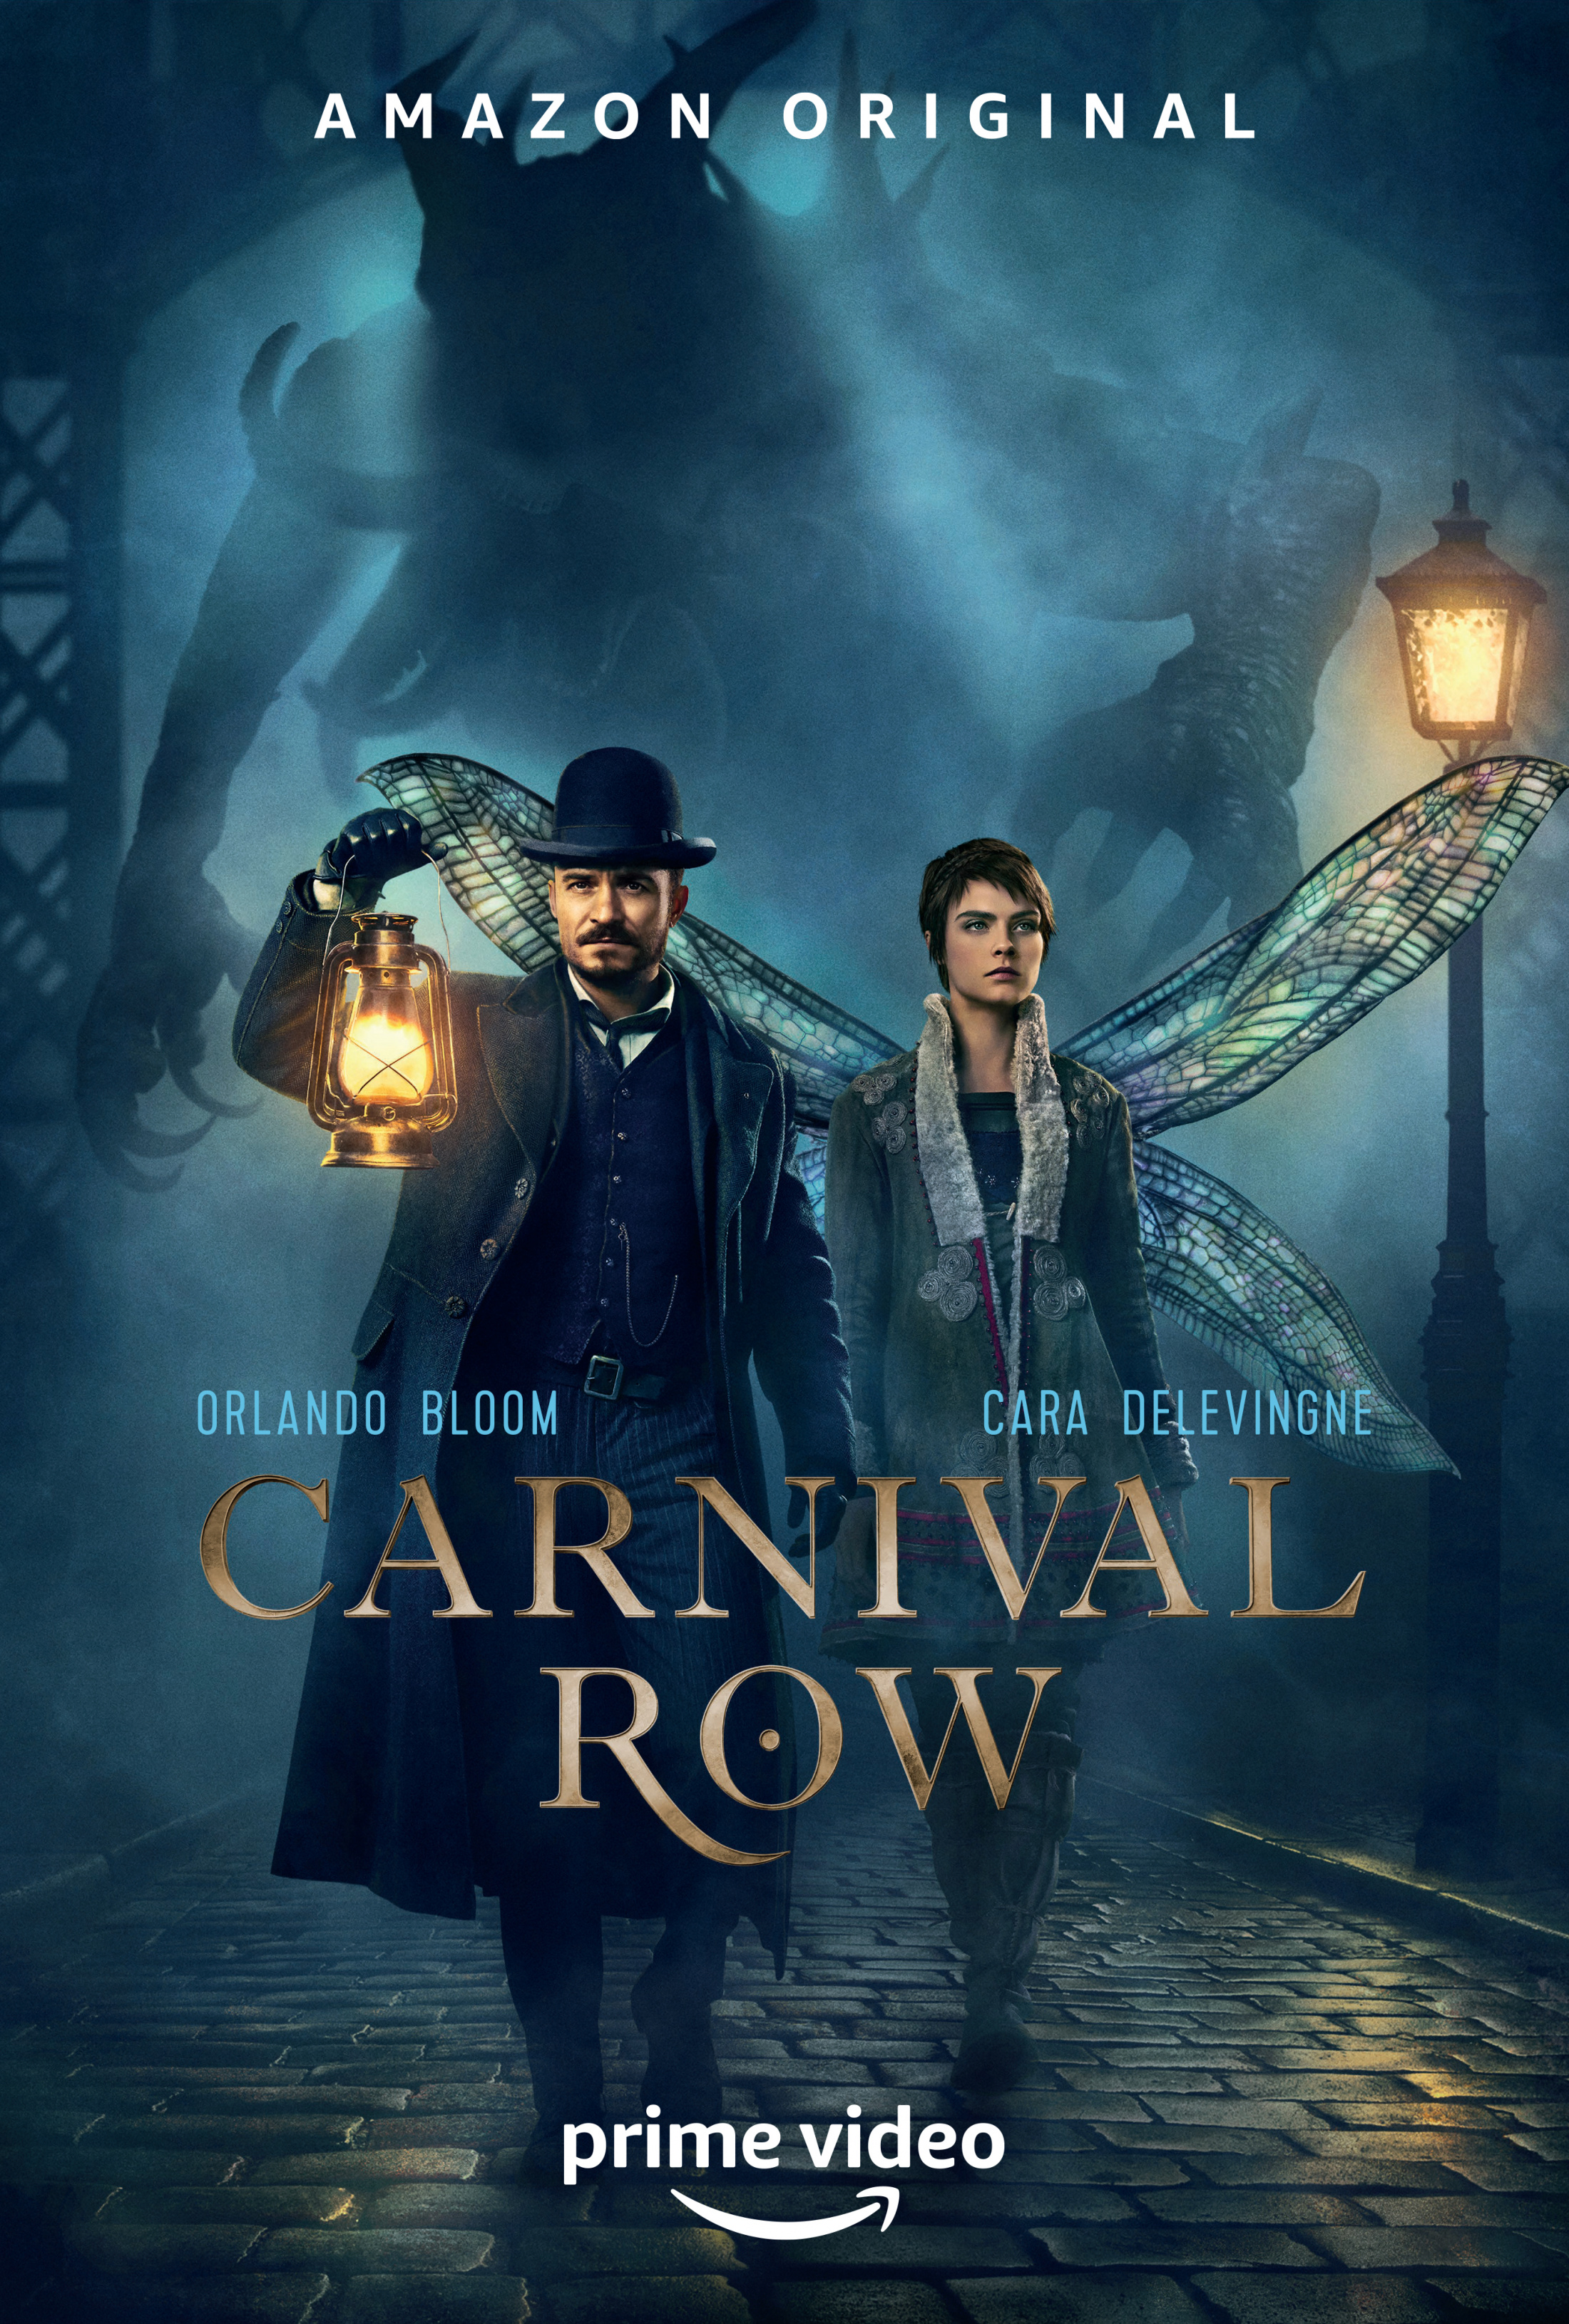 Image Media for Carnival Row Campaign